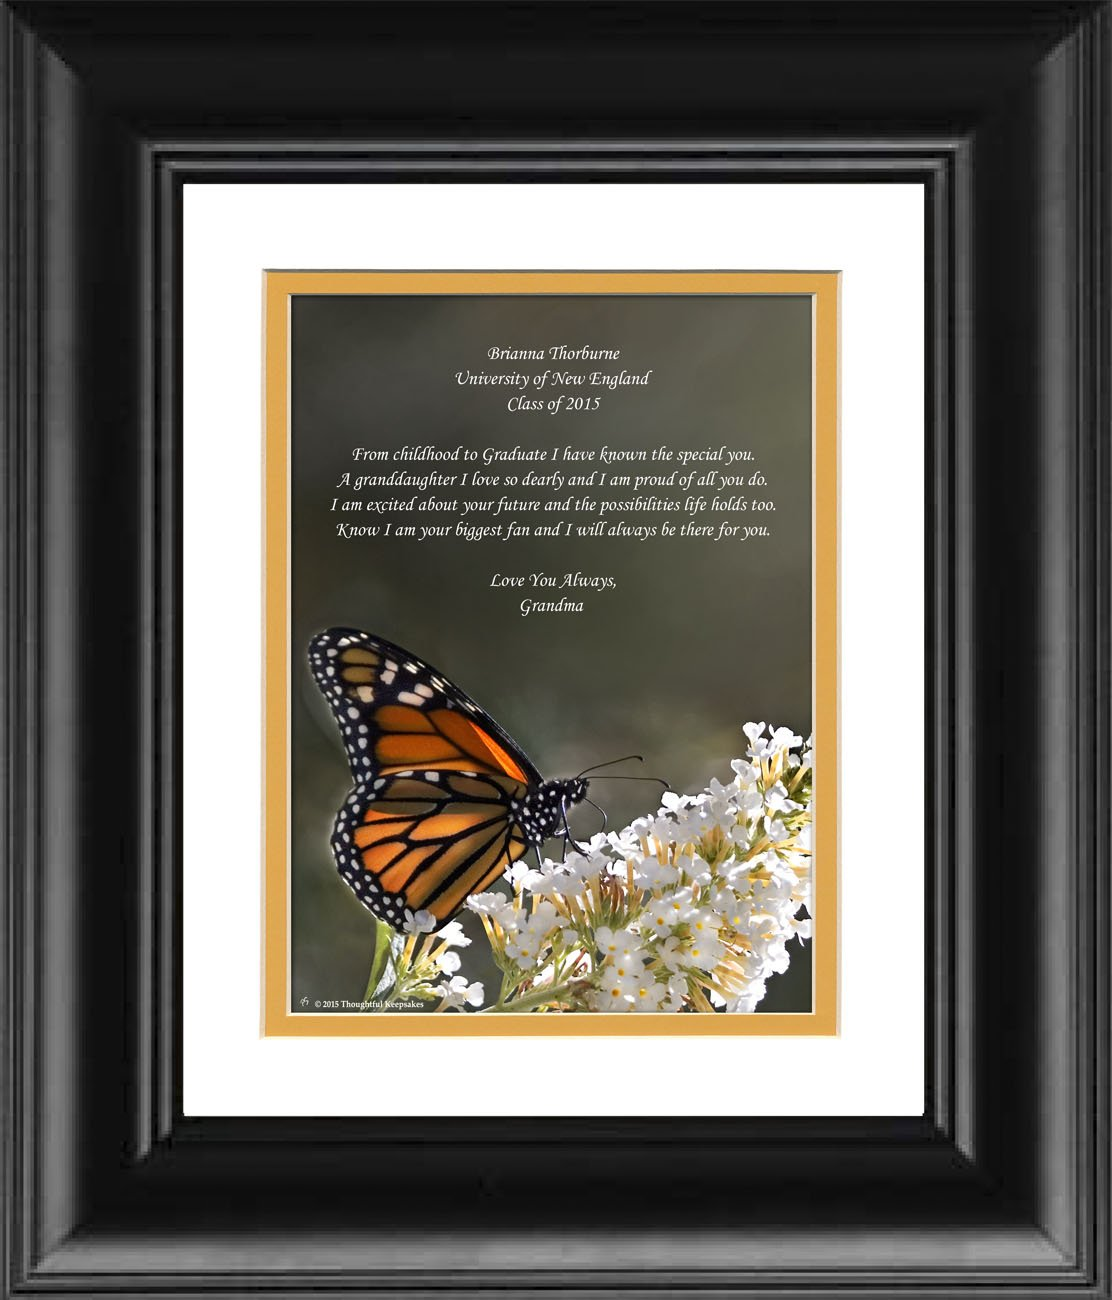 Framed Personalized Granddaughter Graduation Gift, Butterfly Photo with ''From Childhood to Graduate'' 8x10 Double Matted. Special Keepsake Graduation Gifts for Granddaughter 2017